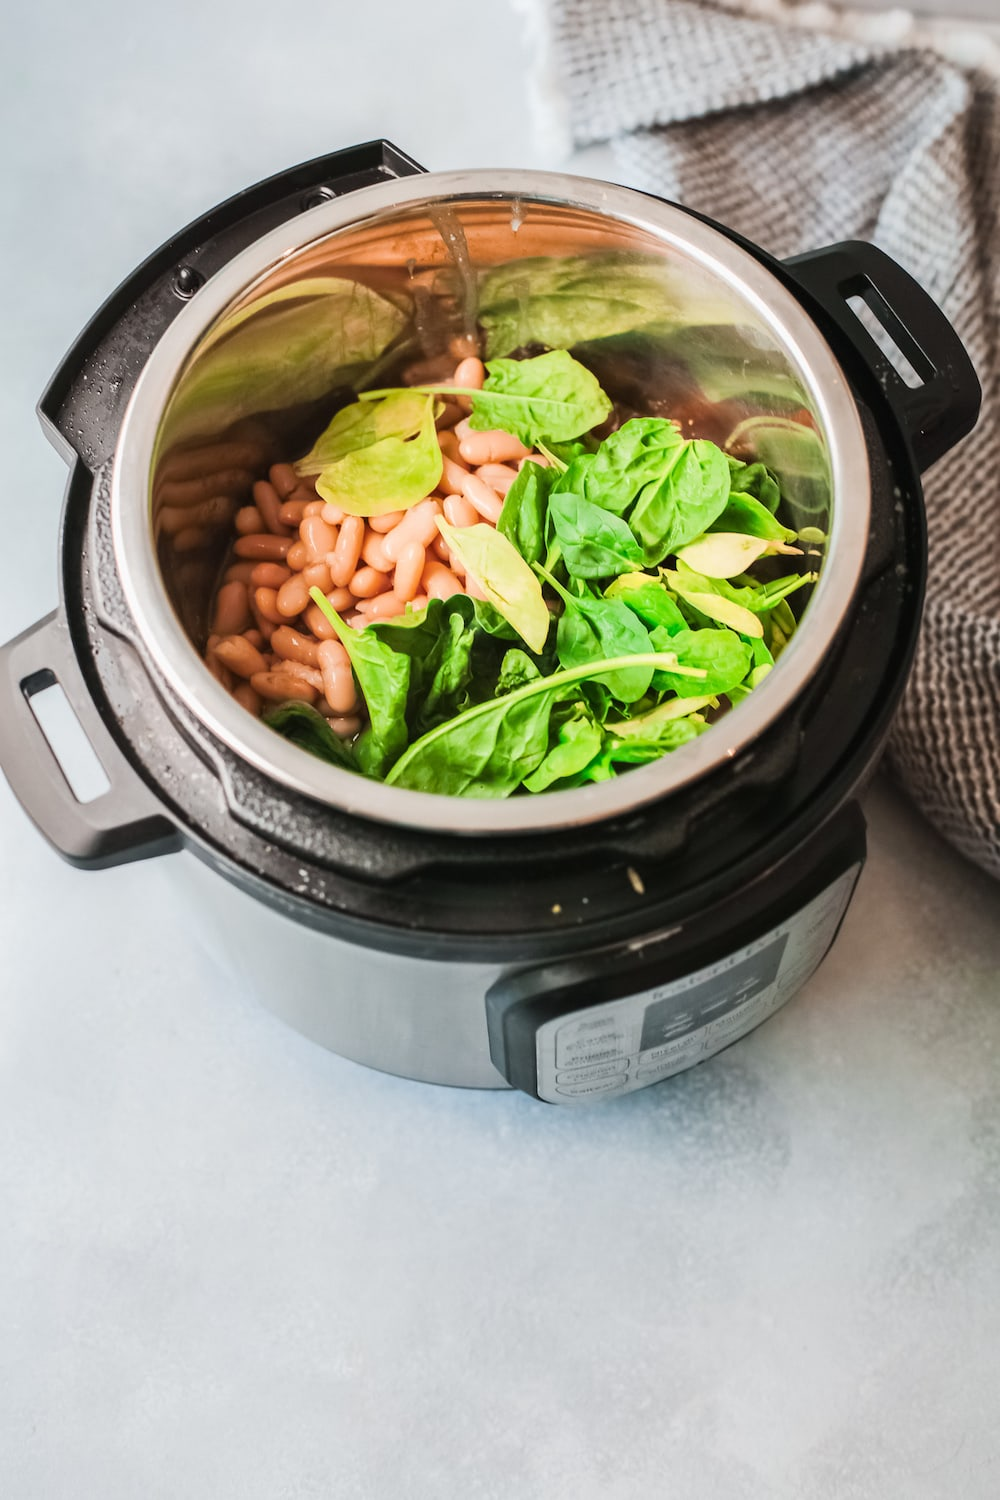 Cannellini beans and spinach in an instant pot.